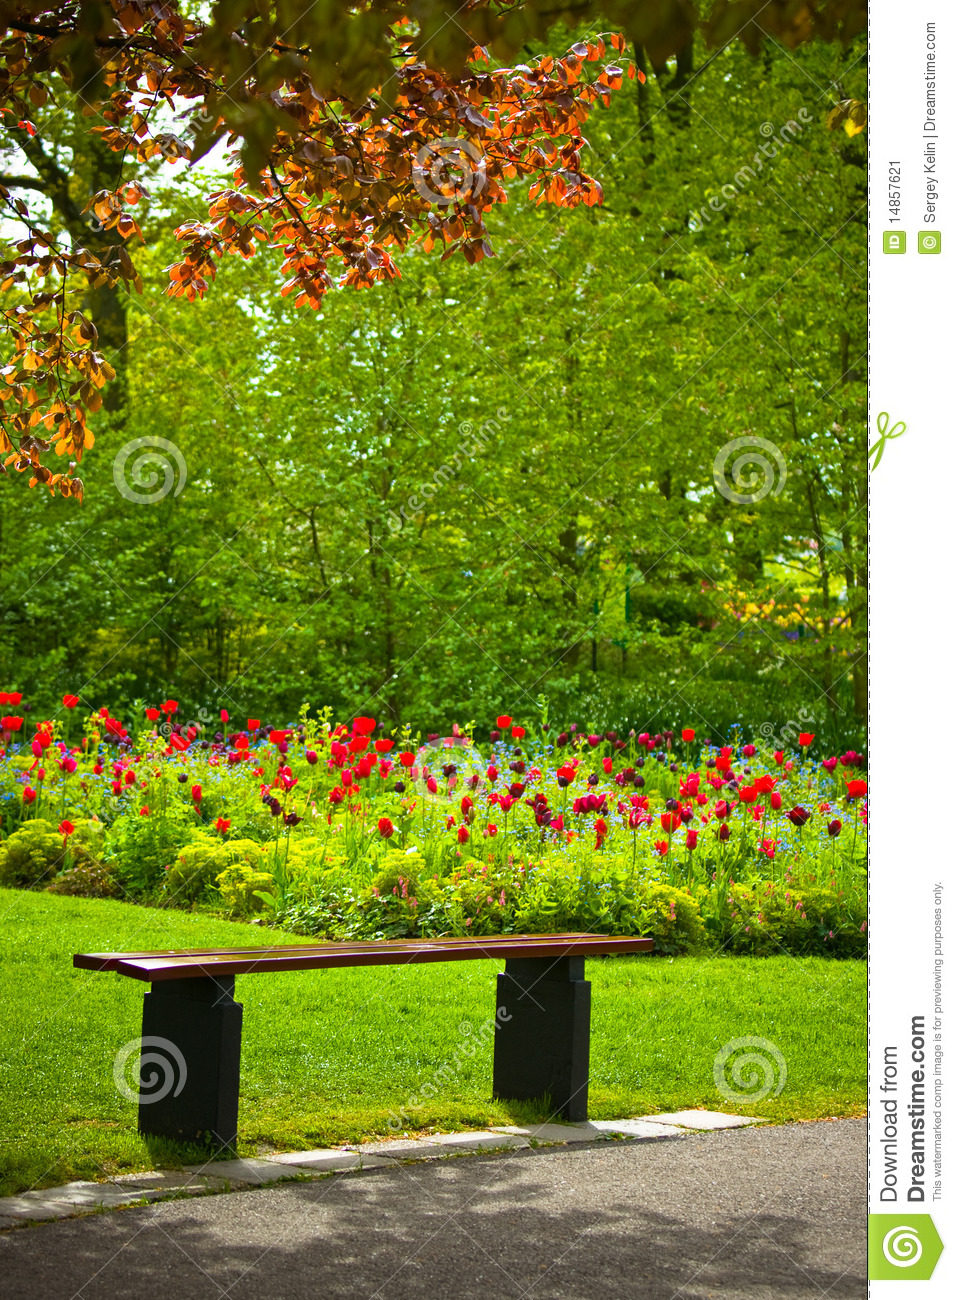 Bench under a tree with flowers in a park